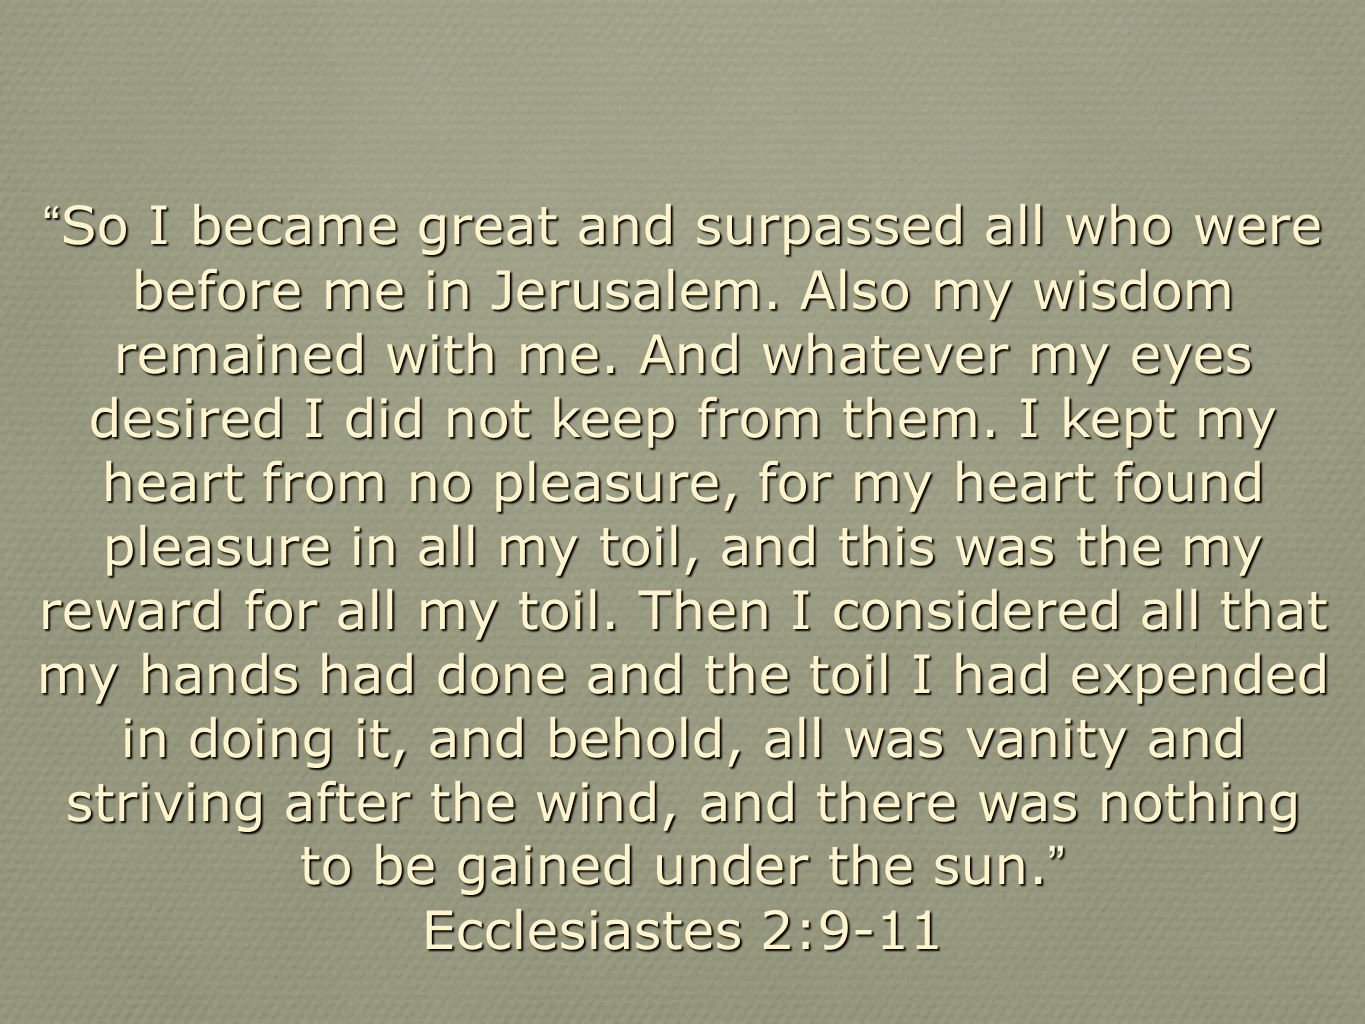 So I became great and surpassed all who were before me in Jerusalem